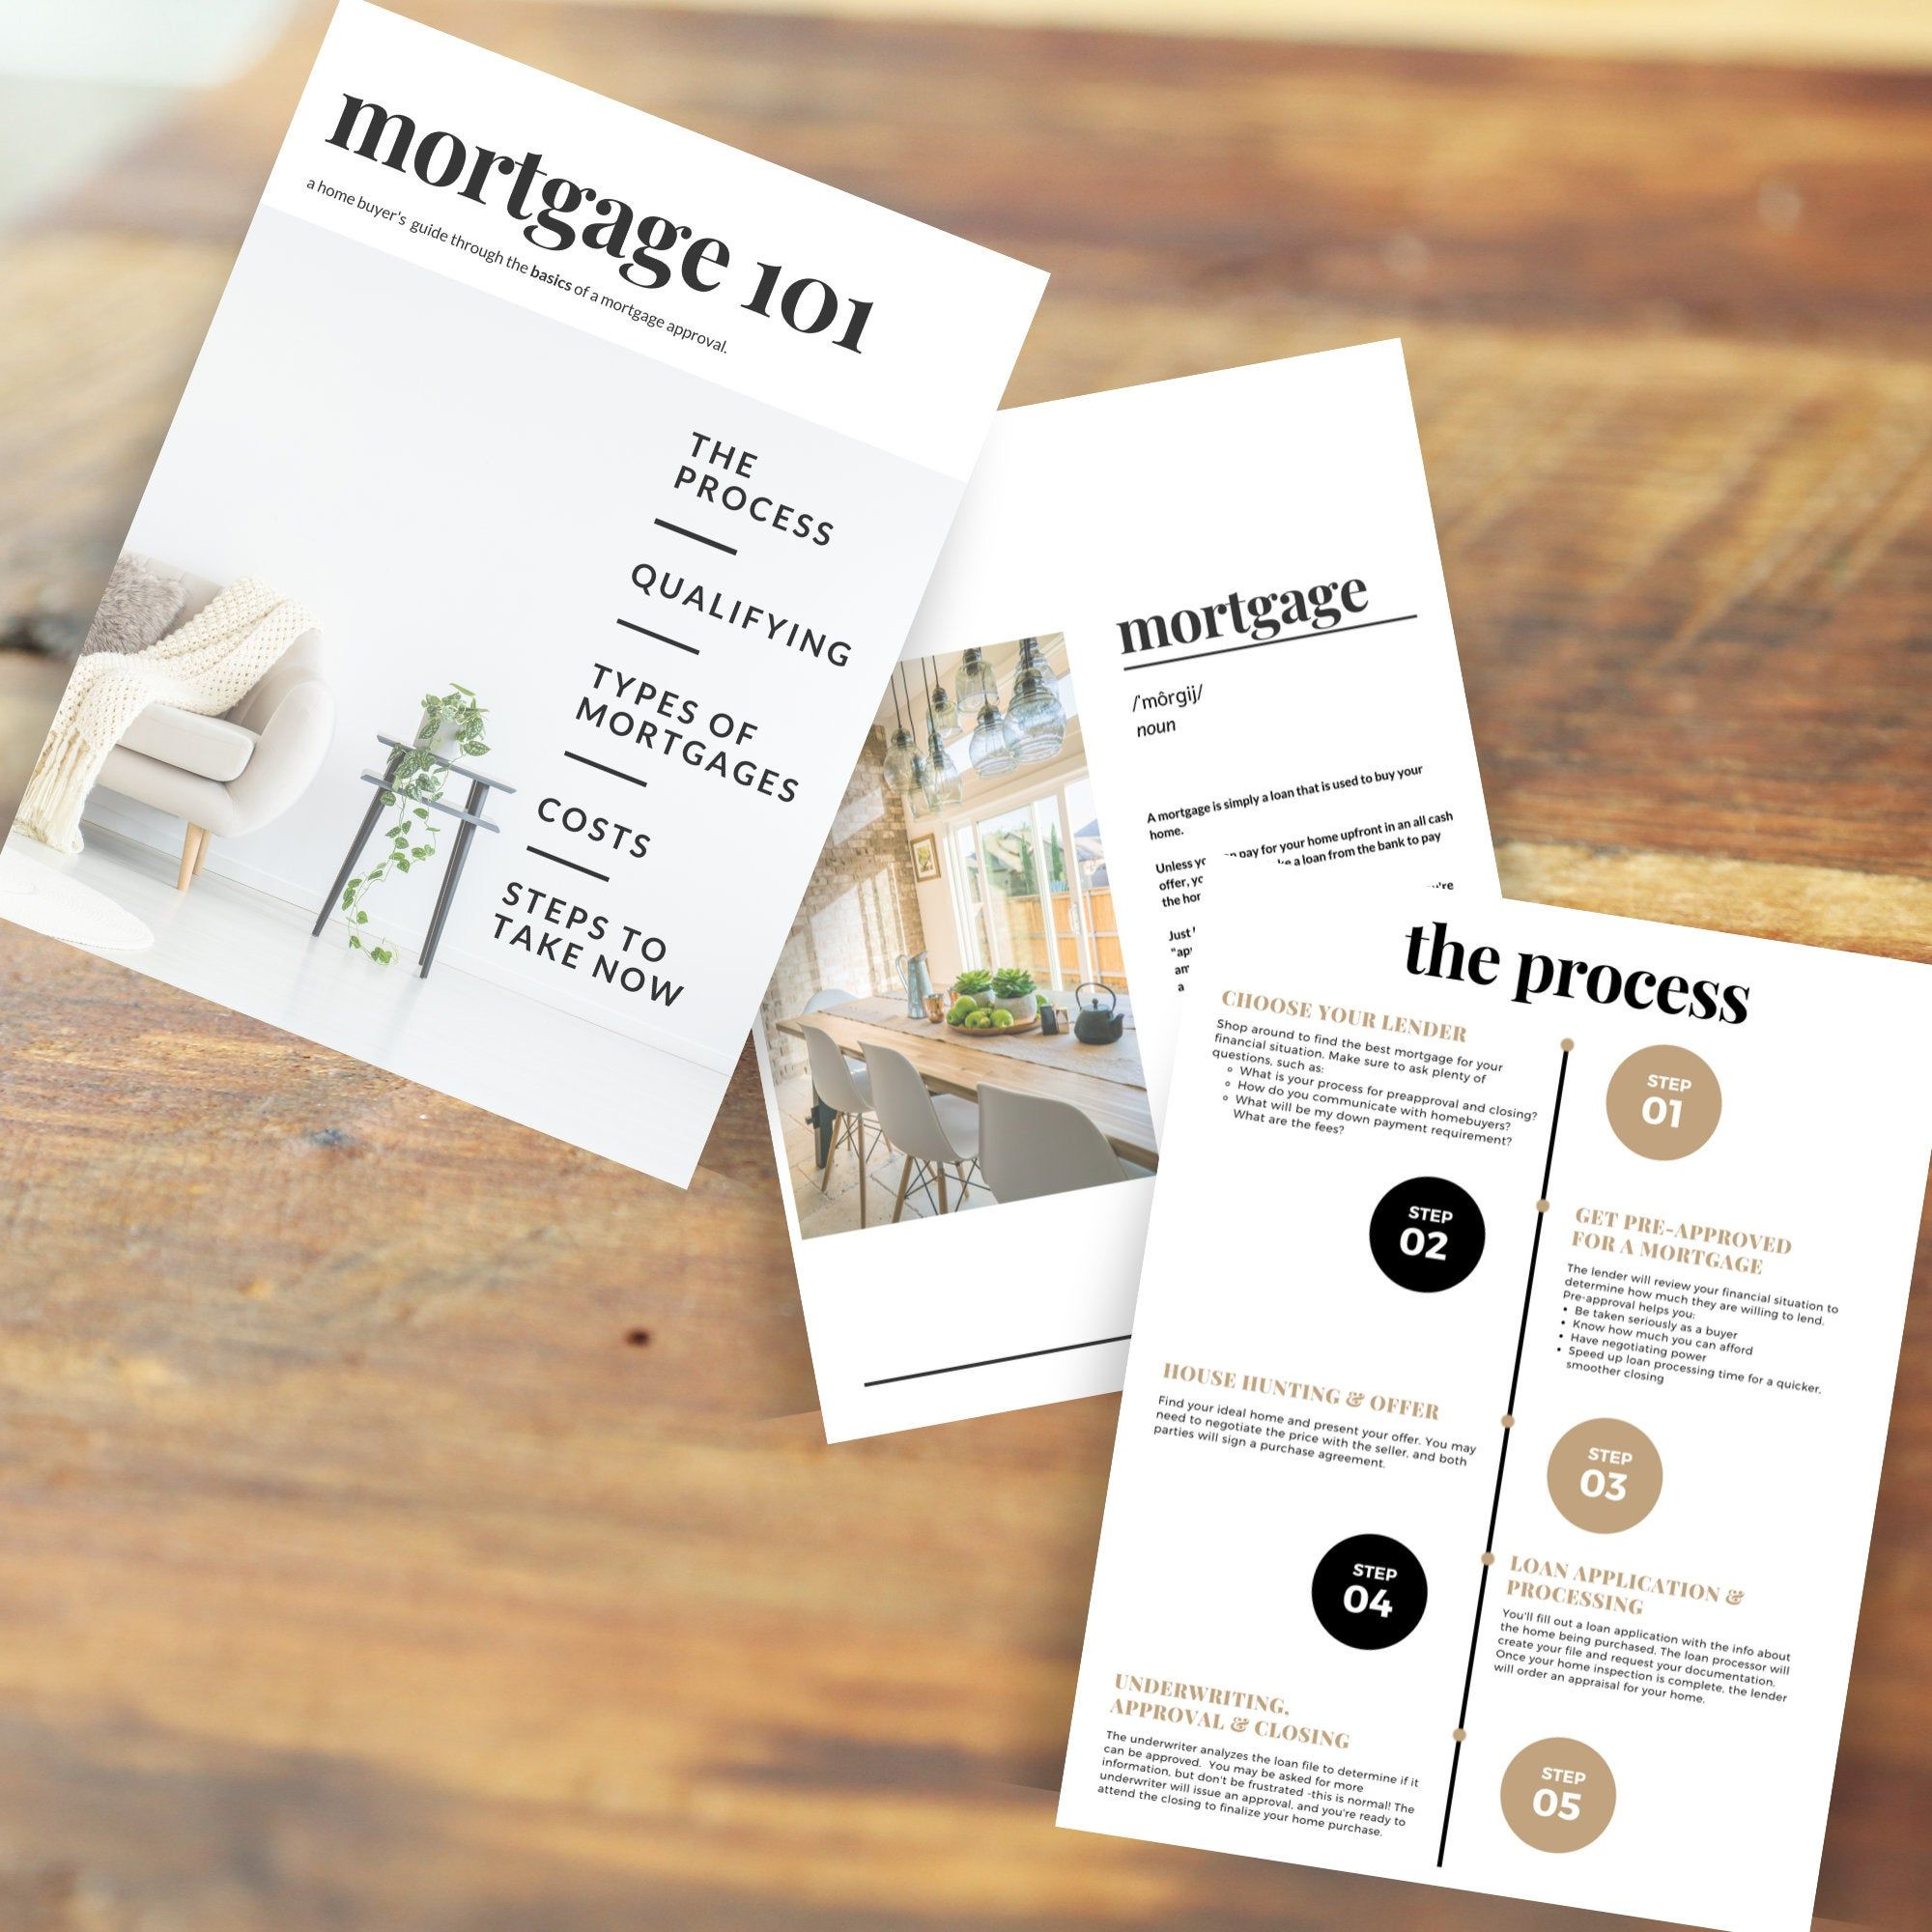 Real Estate Mortgage Guide, Instant download PDF, Realtor tools, Real estate marketing, Buyers presentation, Canva, Realtor template, Buying